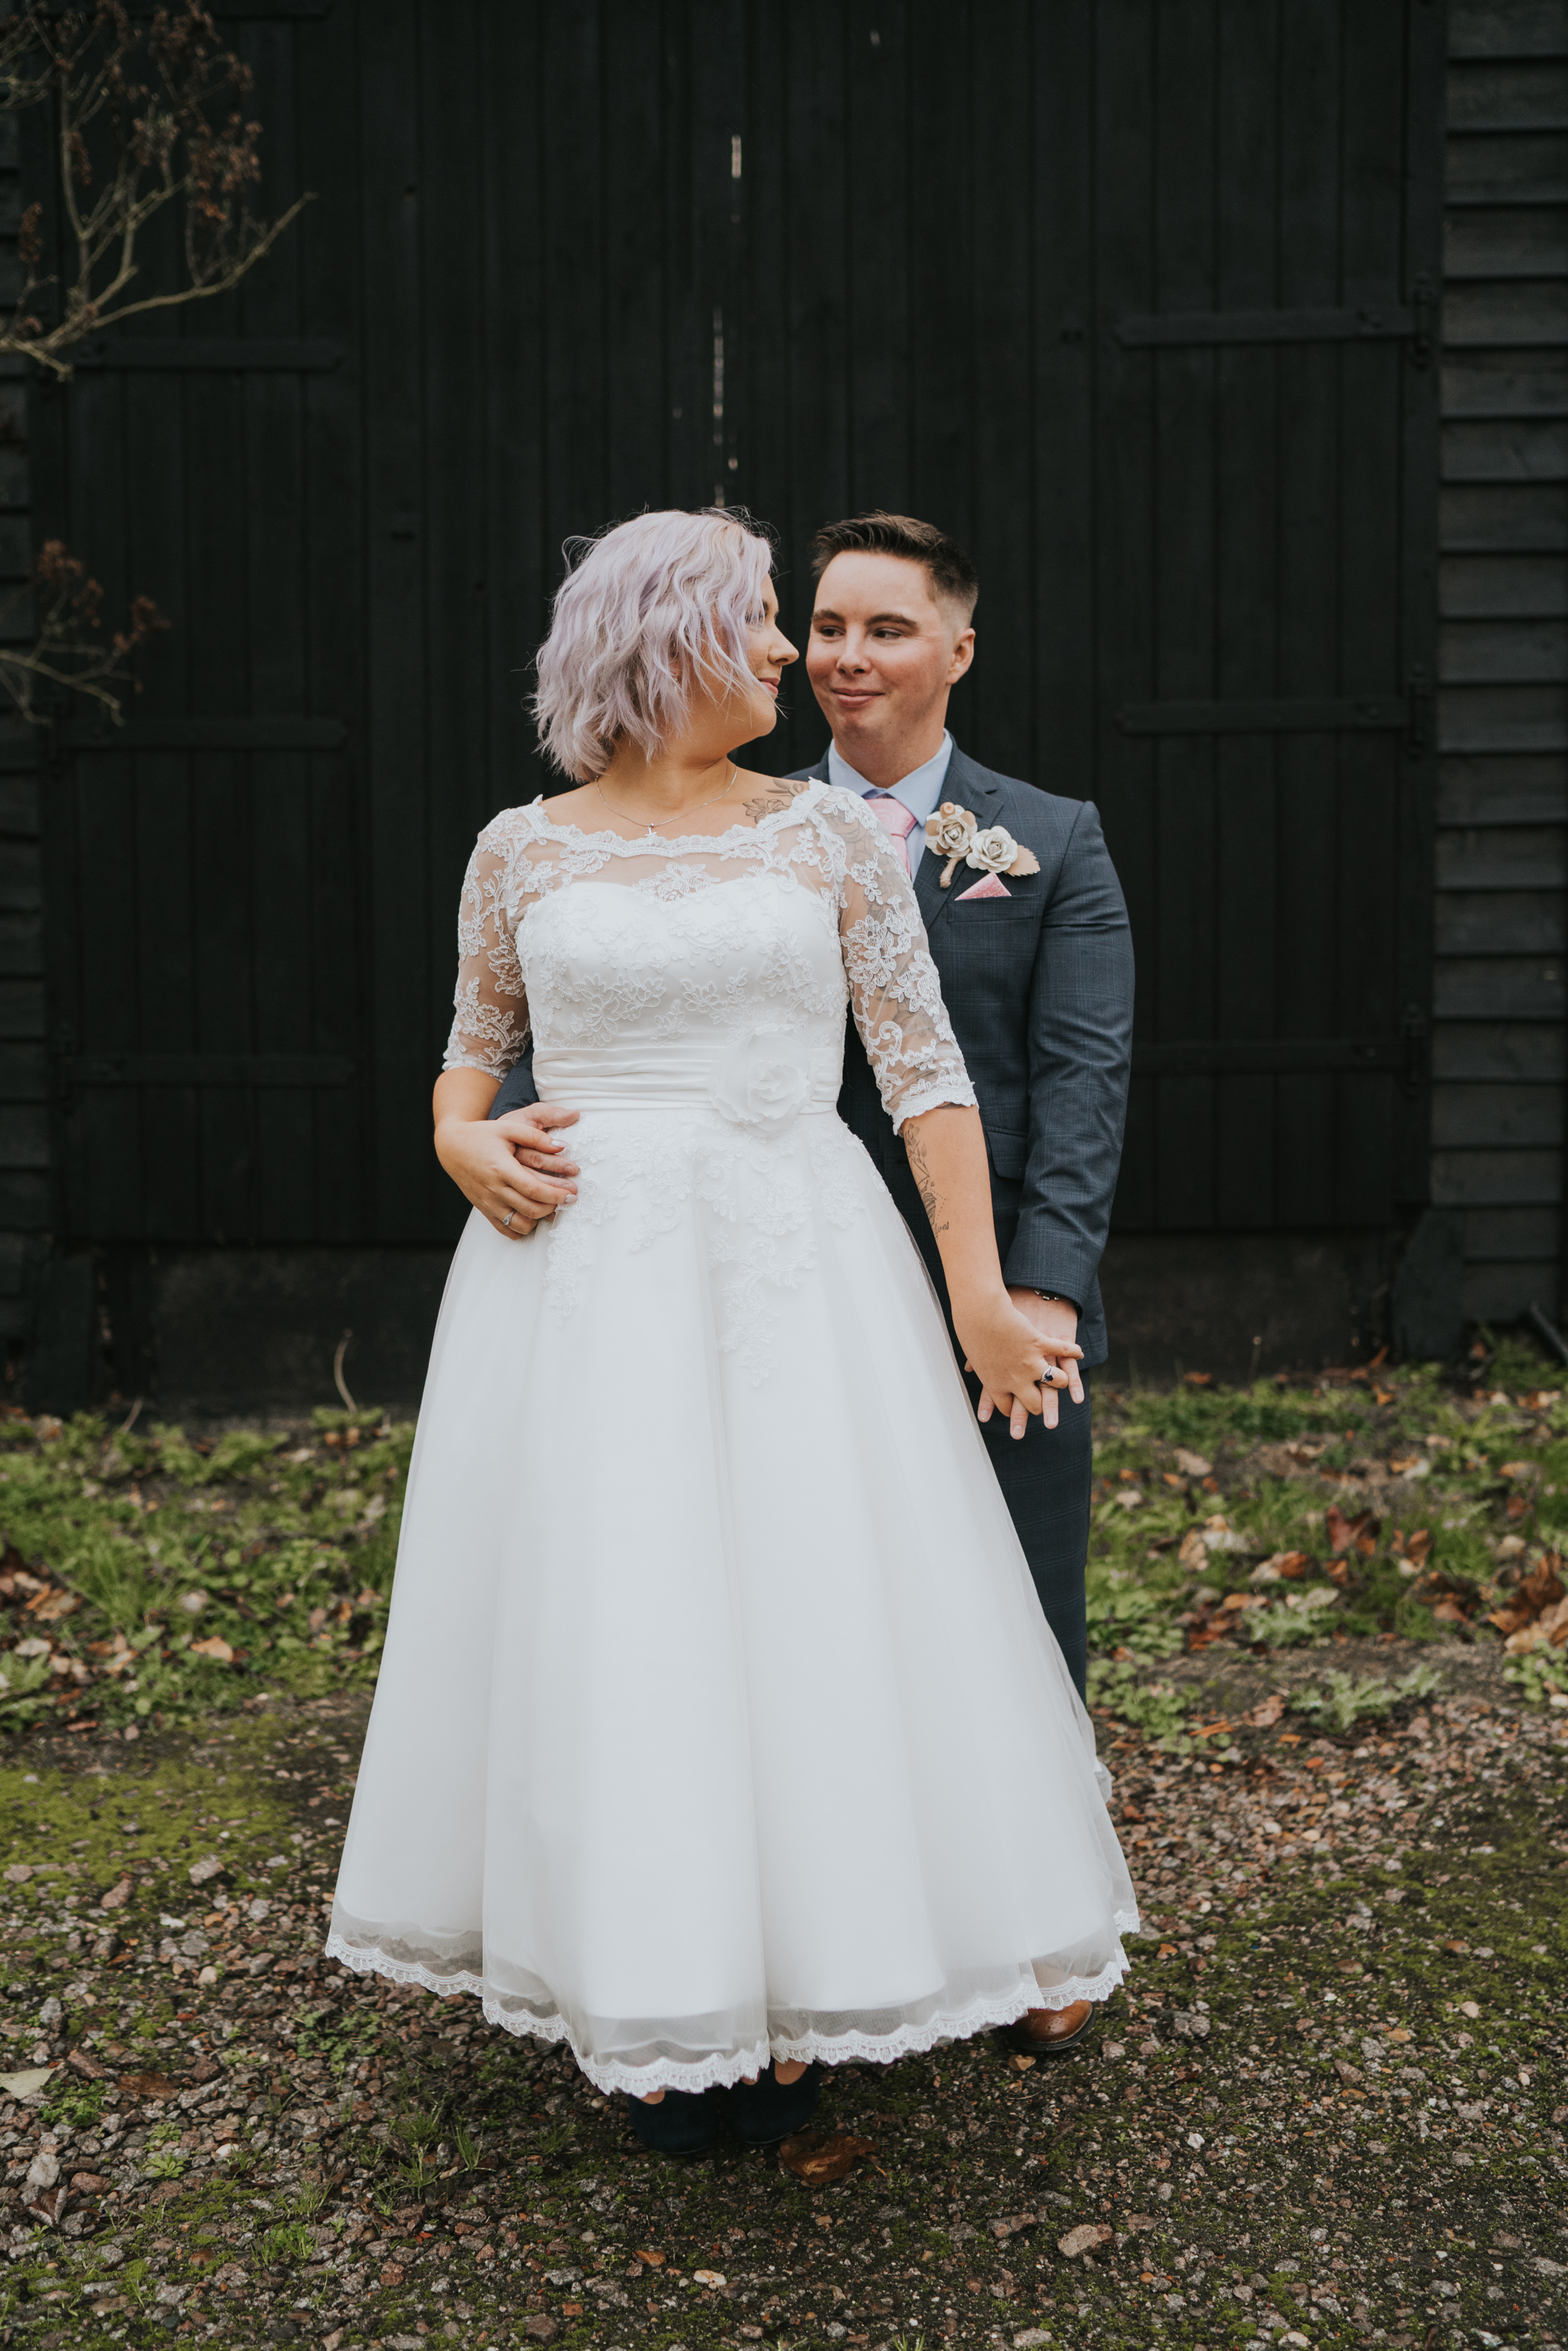 rhia-james-rustic-crabbs-barn-vintage-50s-retro-wedding-grace-elizabeth-colchester-essex-alternative-relaxed-wedding-family-photography-devon-suffolk-norfolk-essex (86 of 138).jpg